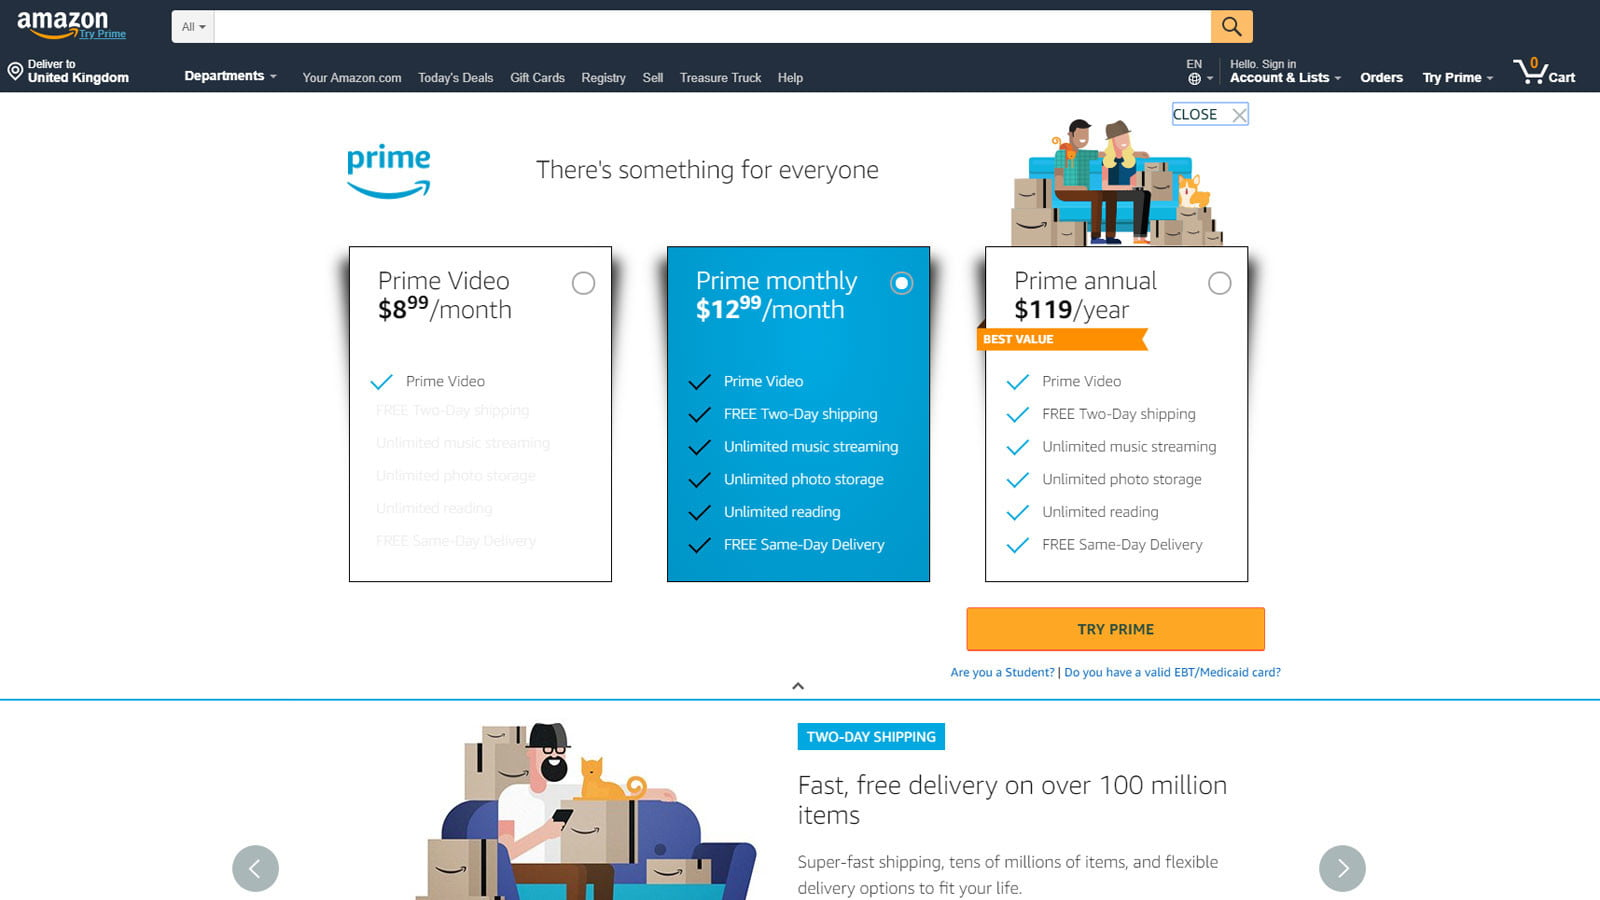 How to Sign up for Amazon Prime | Digital Trends